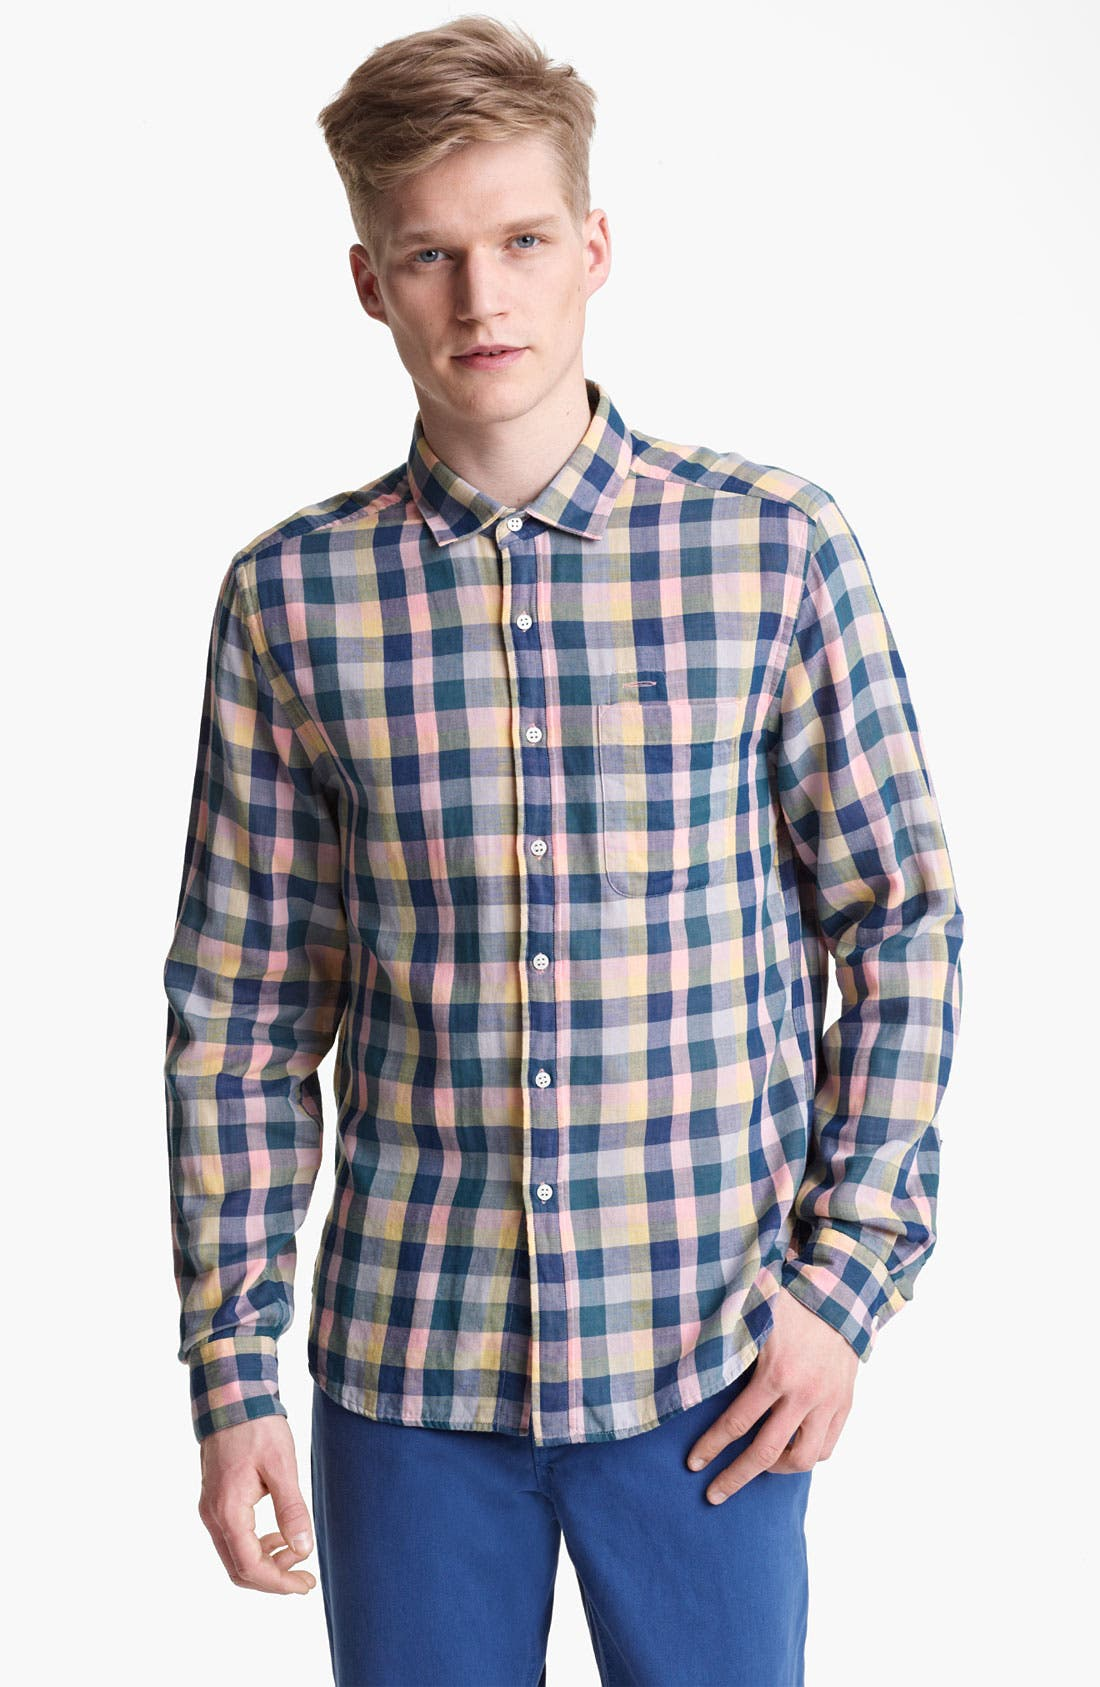 Alternate Image 1 Selected - Shipley & Halmos 'Marine' Plaid Woven Shirt